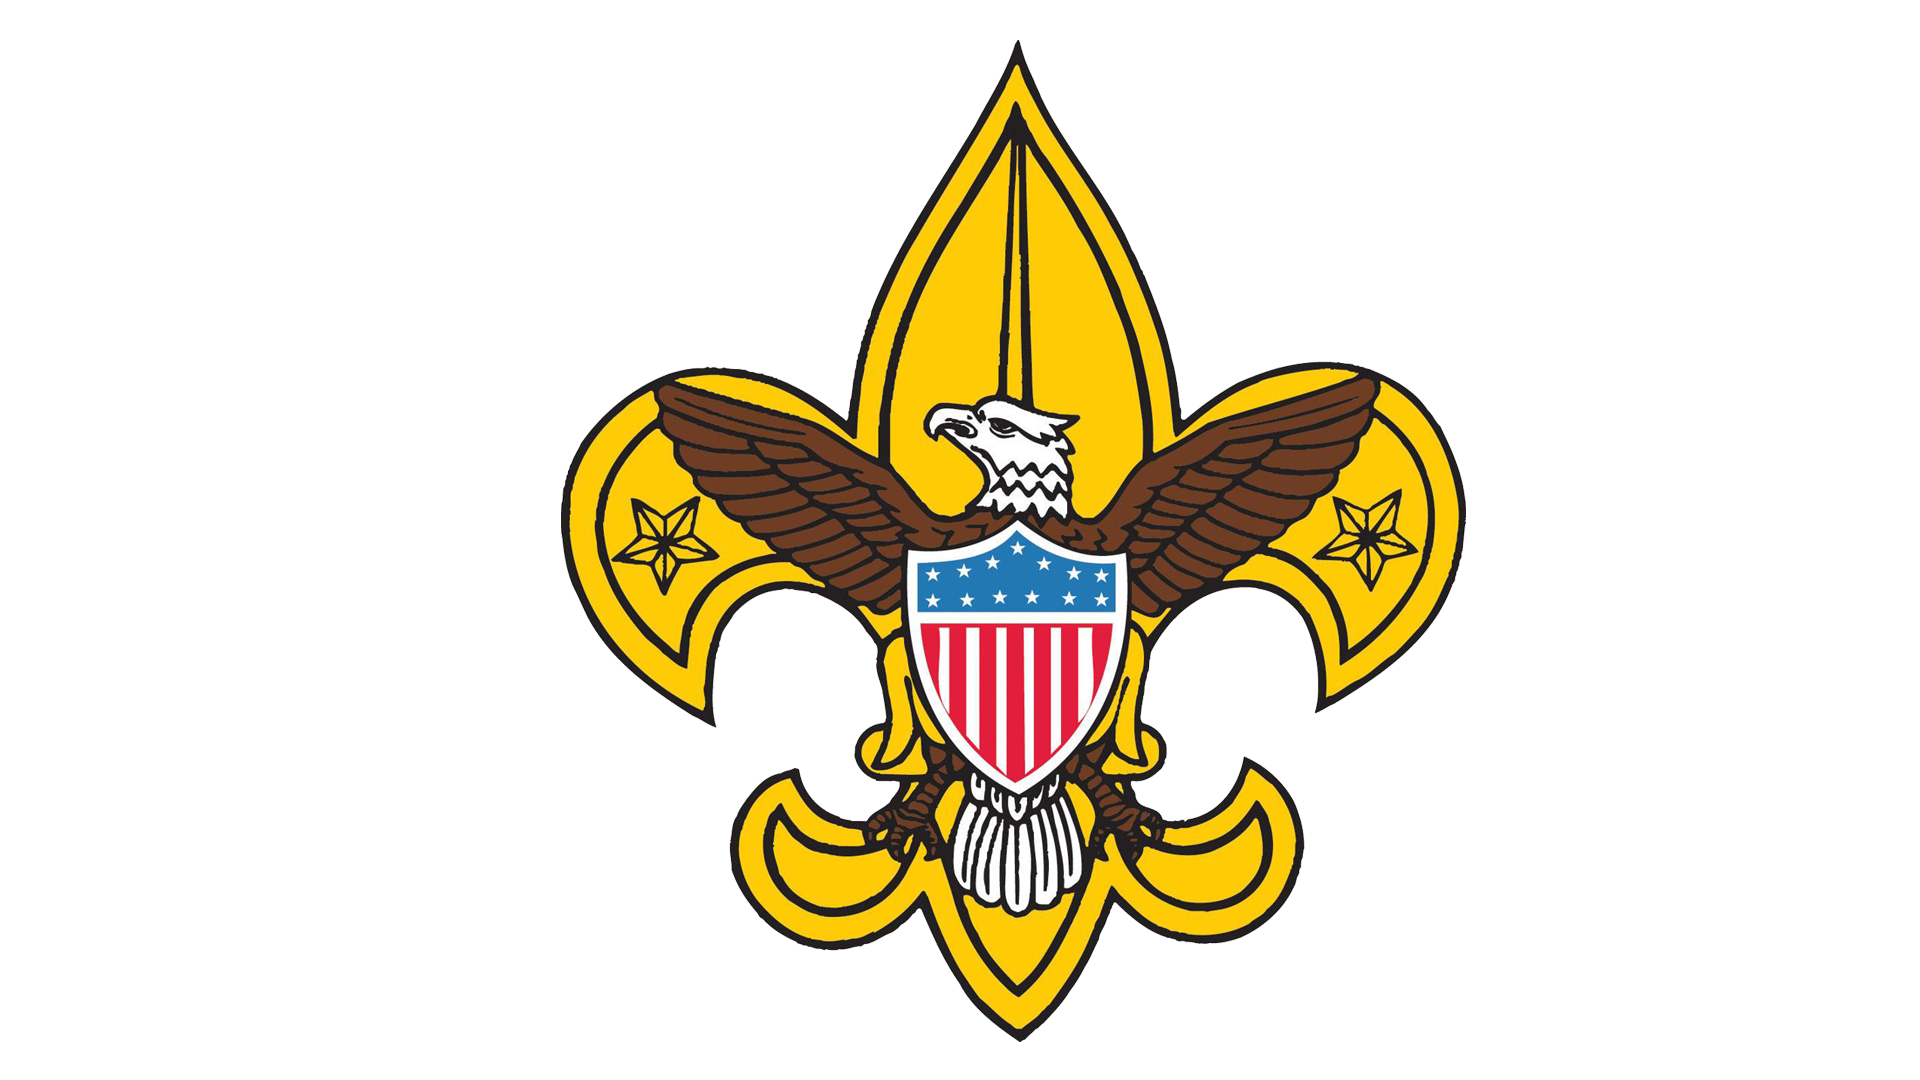 Meaning Boy Scout logo and symbol.